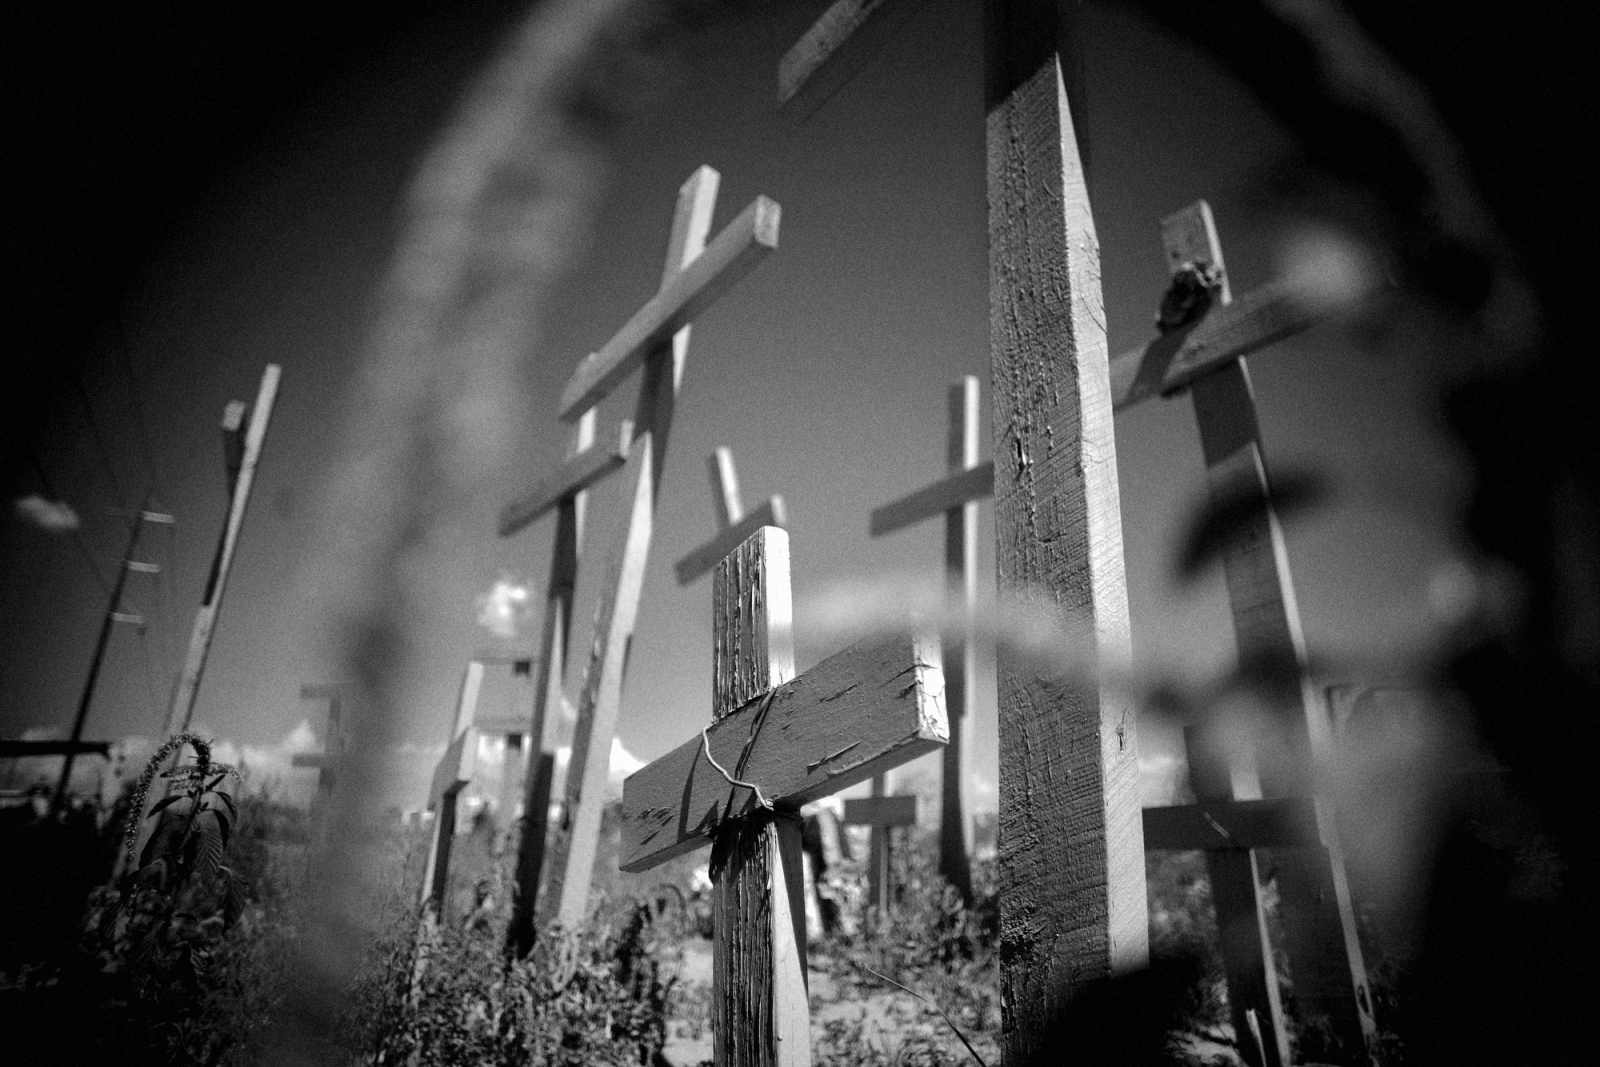 Clandestine graves are an all too common site in Juarez, Mexico. The city is gripped in a wave of violence as drug cartels battle each other and the federal authorities in the border town, which has lead to a more than ten-fold increase in homicides this year. Monuments such as this one can be found in well-known areas where bodies are regularly dumped. Eleven bodies were found piled one atop the other in this particular empty lot.